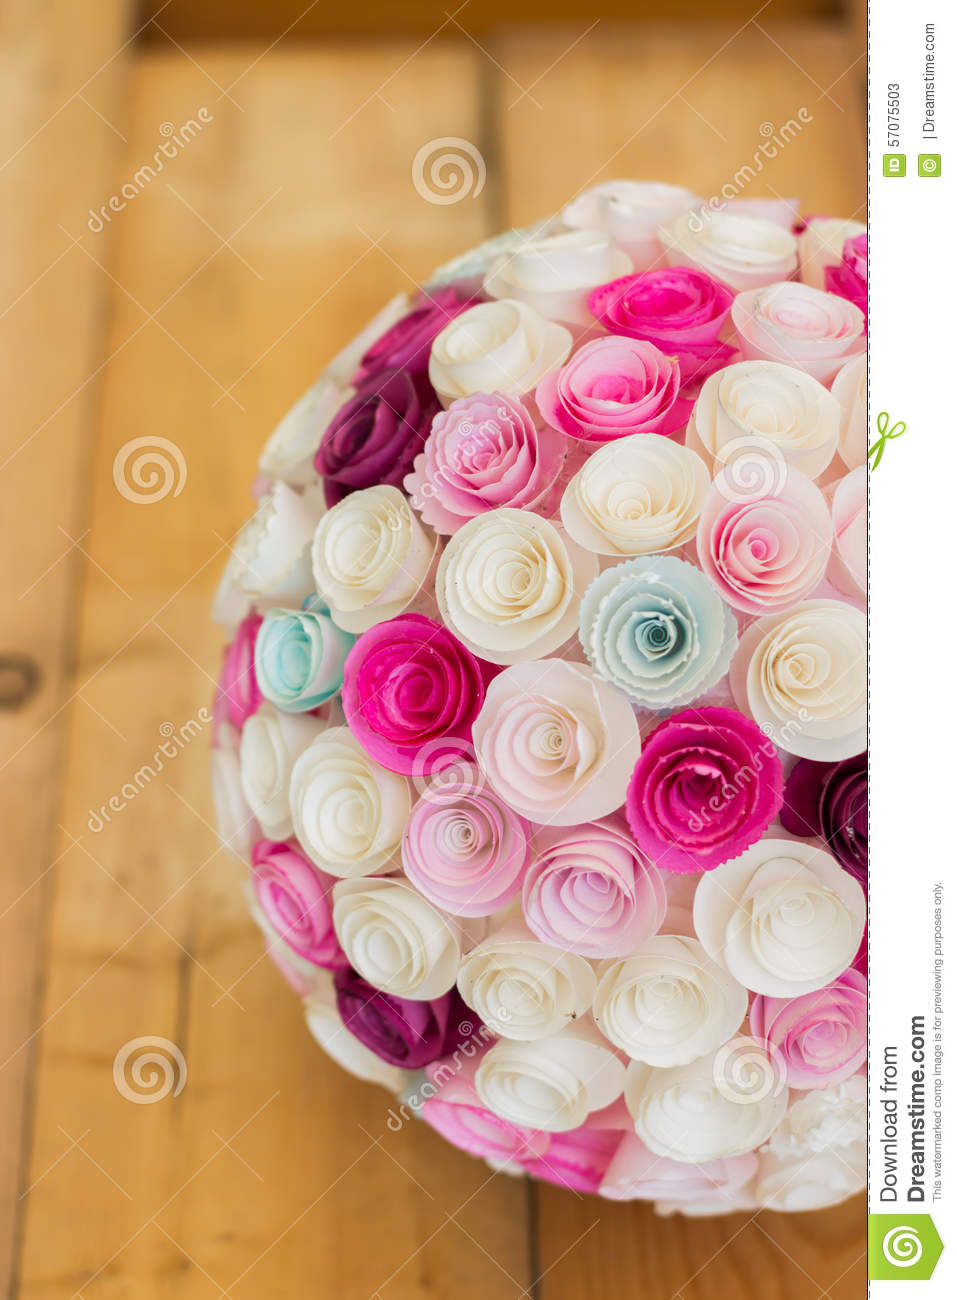 Paper flowers ball stock image. Image of bouquet, origami - 57075503